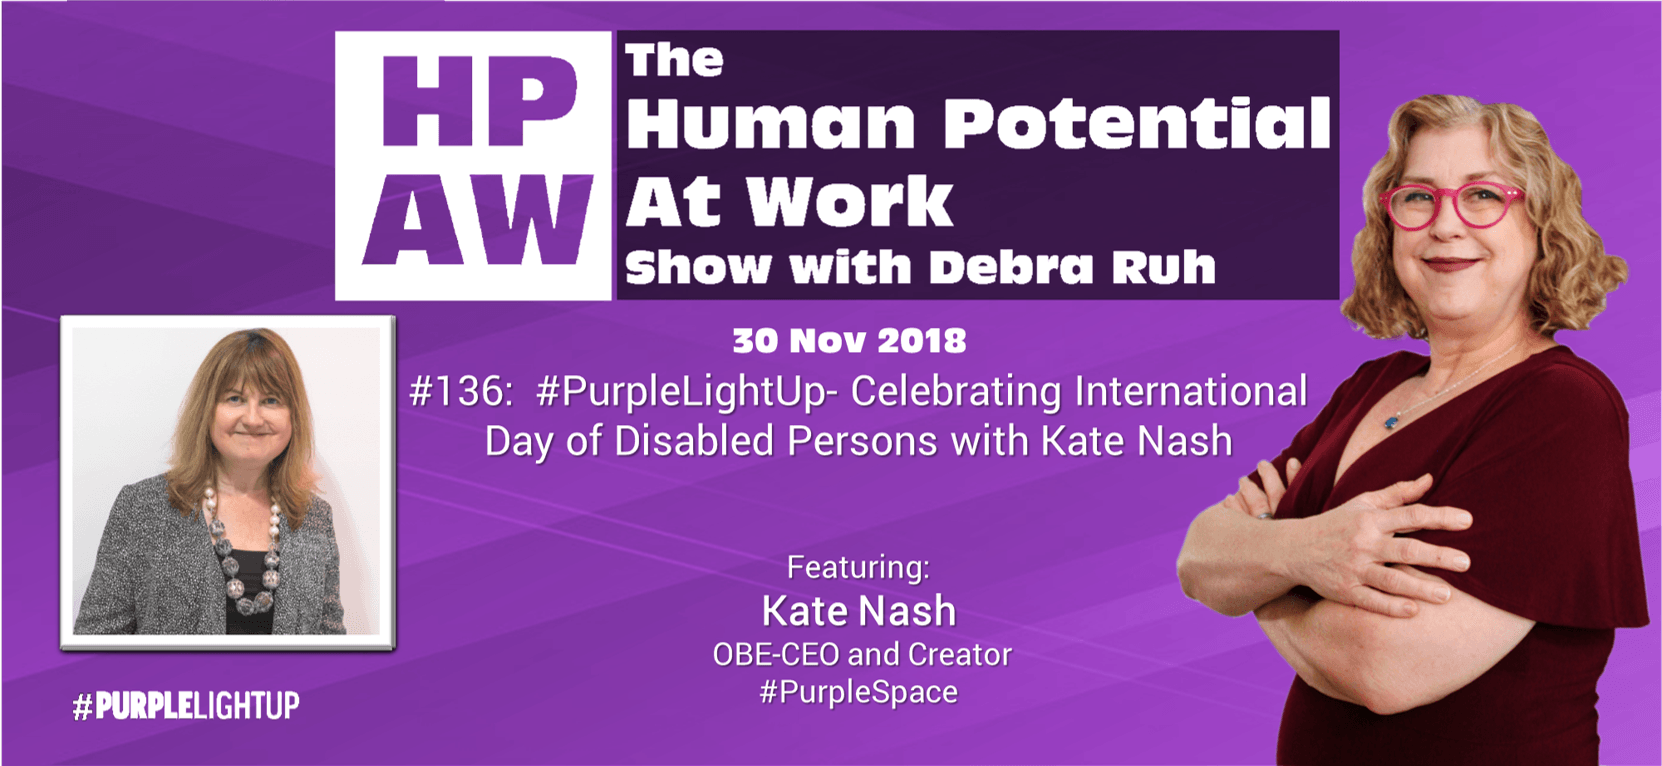 Episode Flyer for #136 #PurpleLightUp- Celebrating International Day of Disabled Persons with Kate Nash